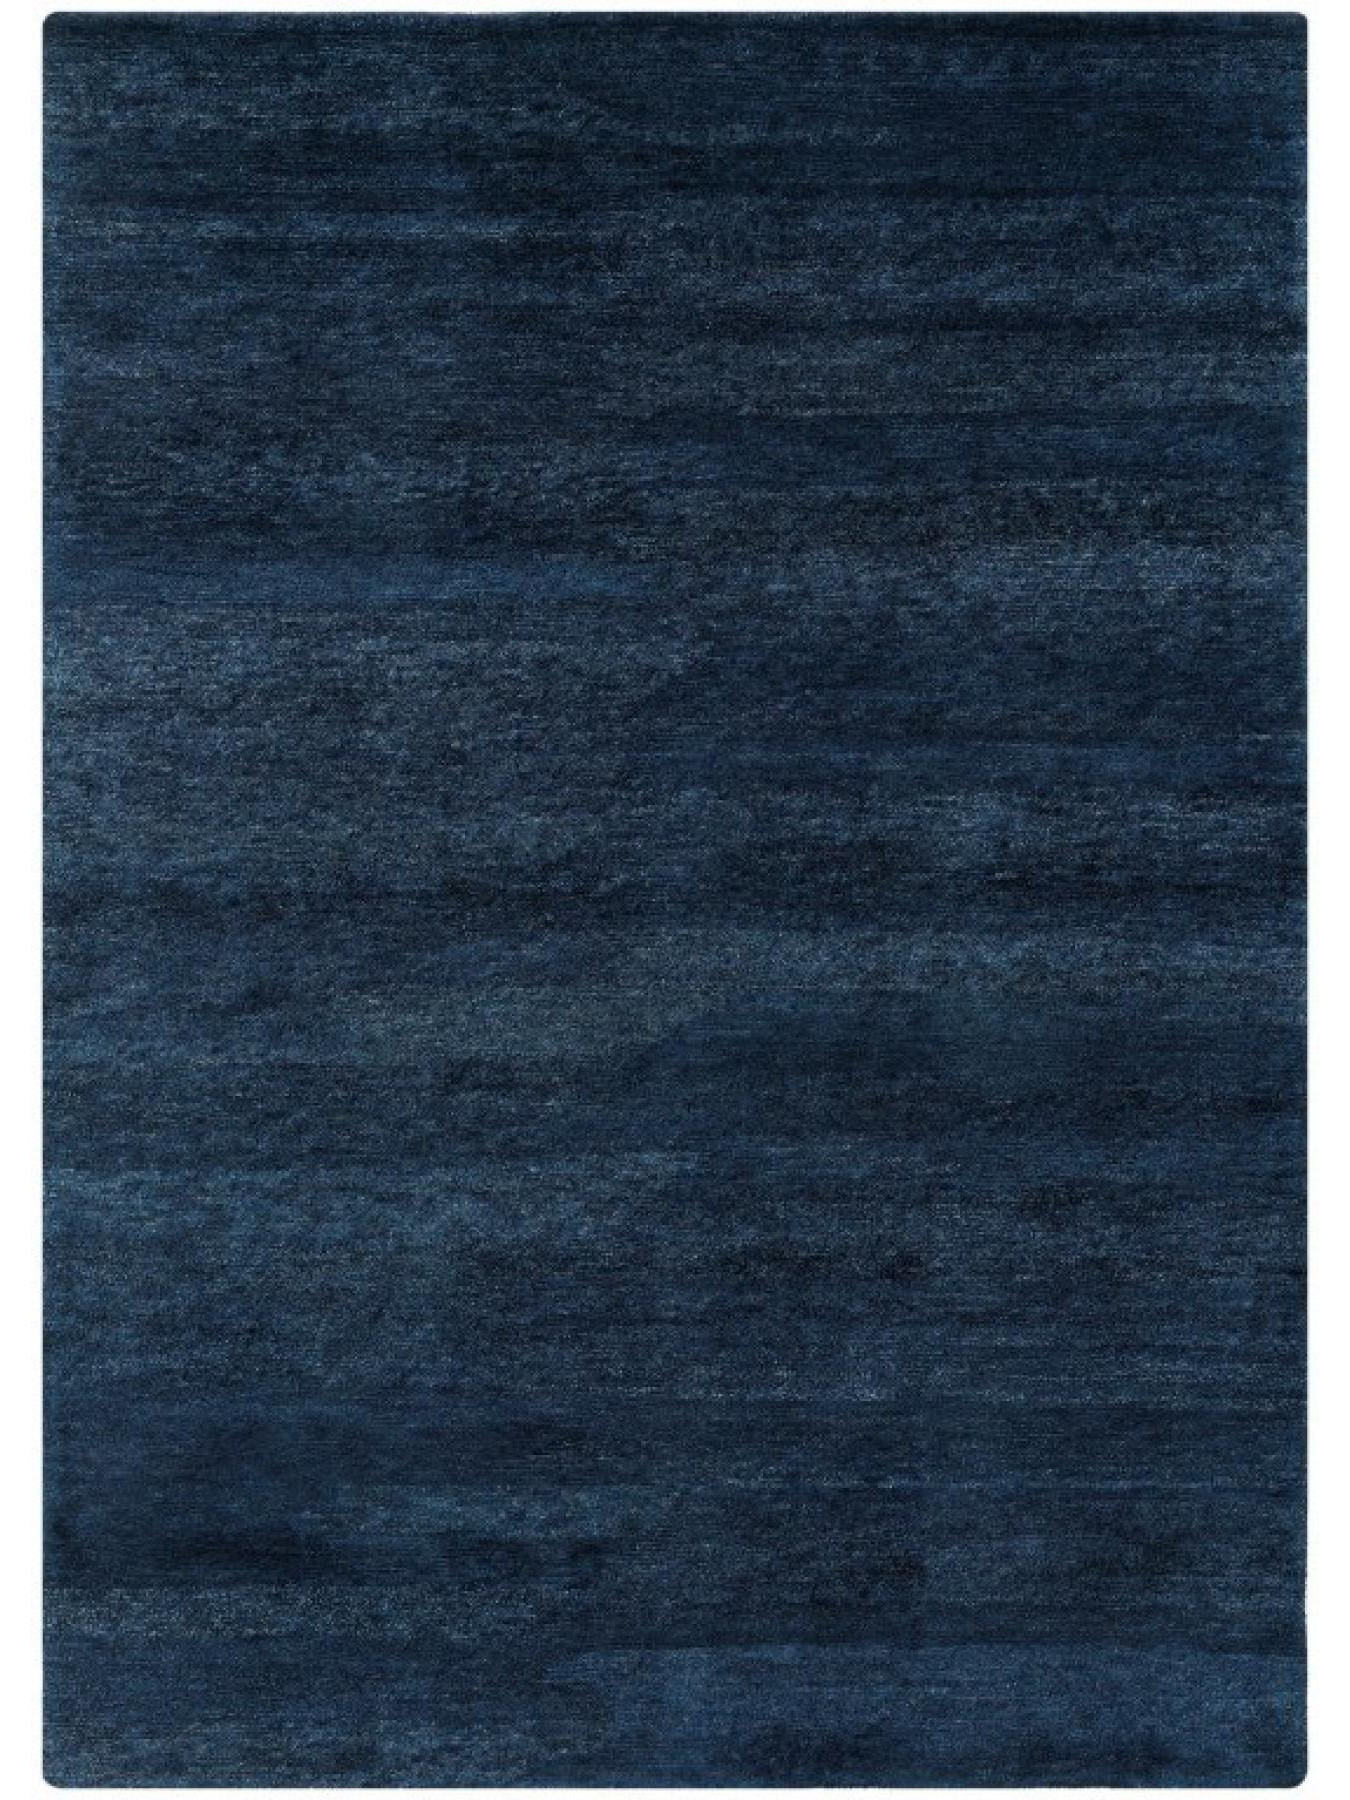 Unicoloured carpets - Look.418-001 Navy